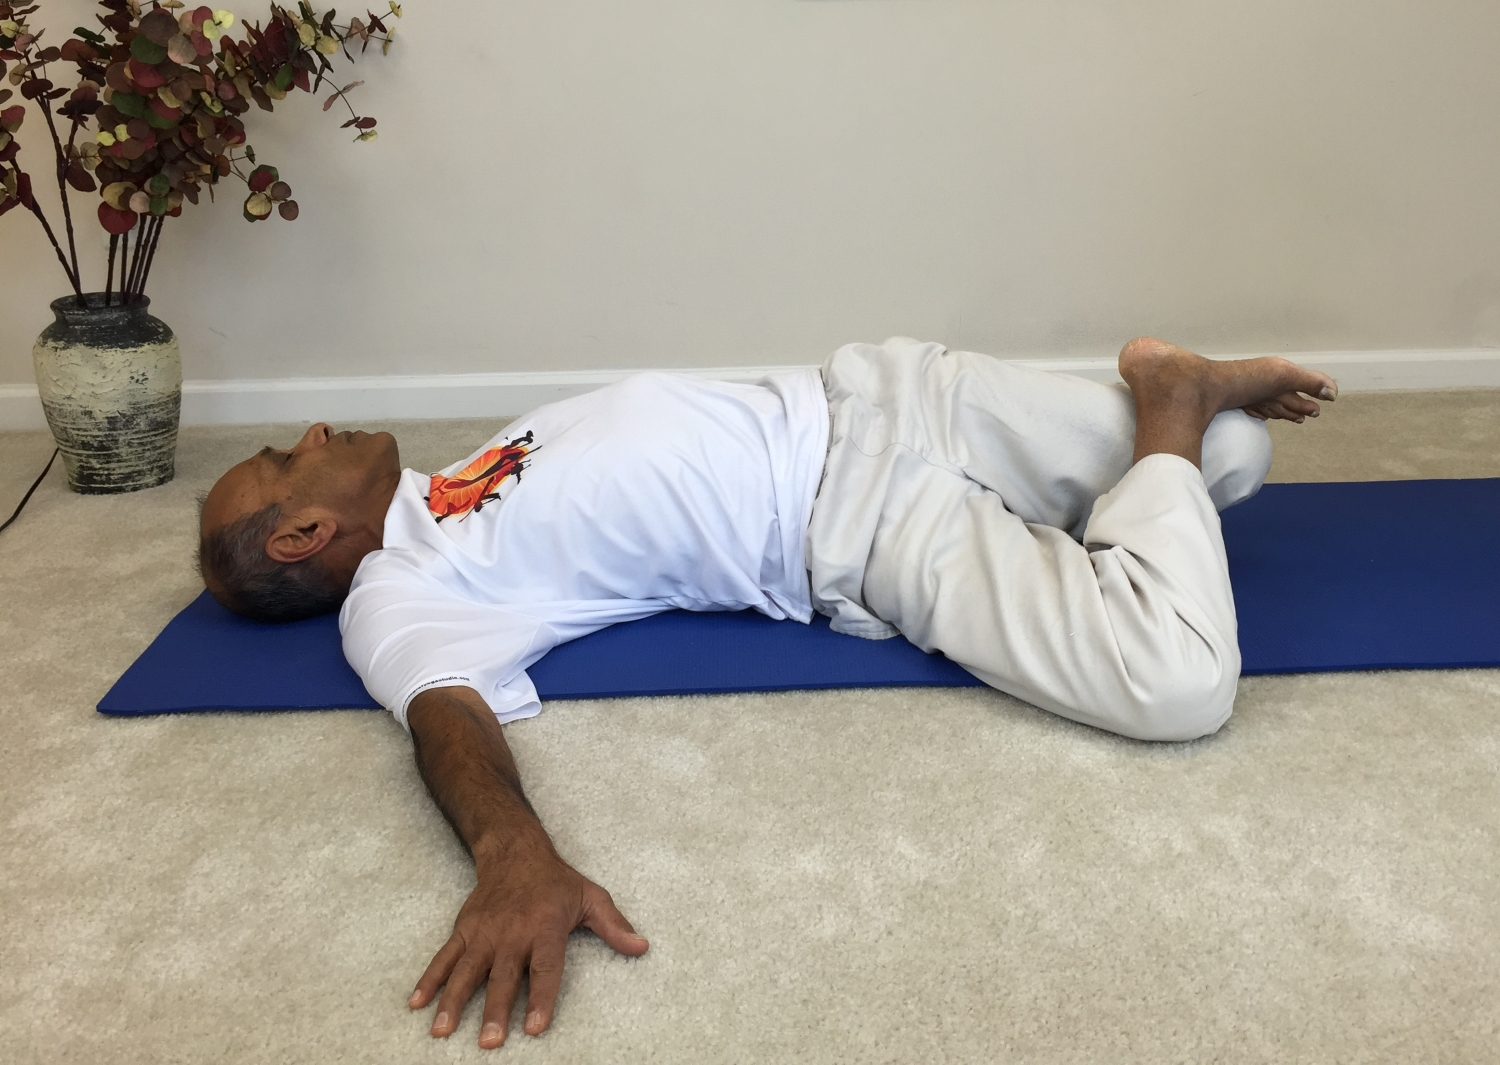 Reclining Twist To Relieve Back Pain Yoga With Subhash